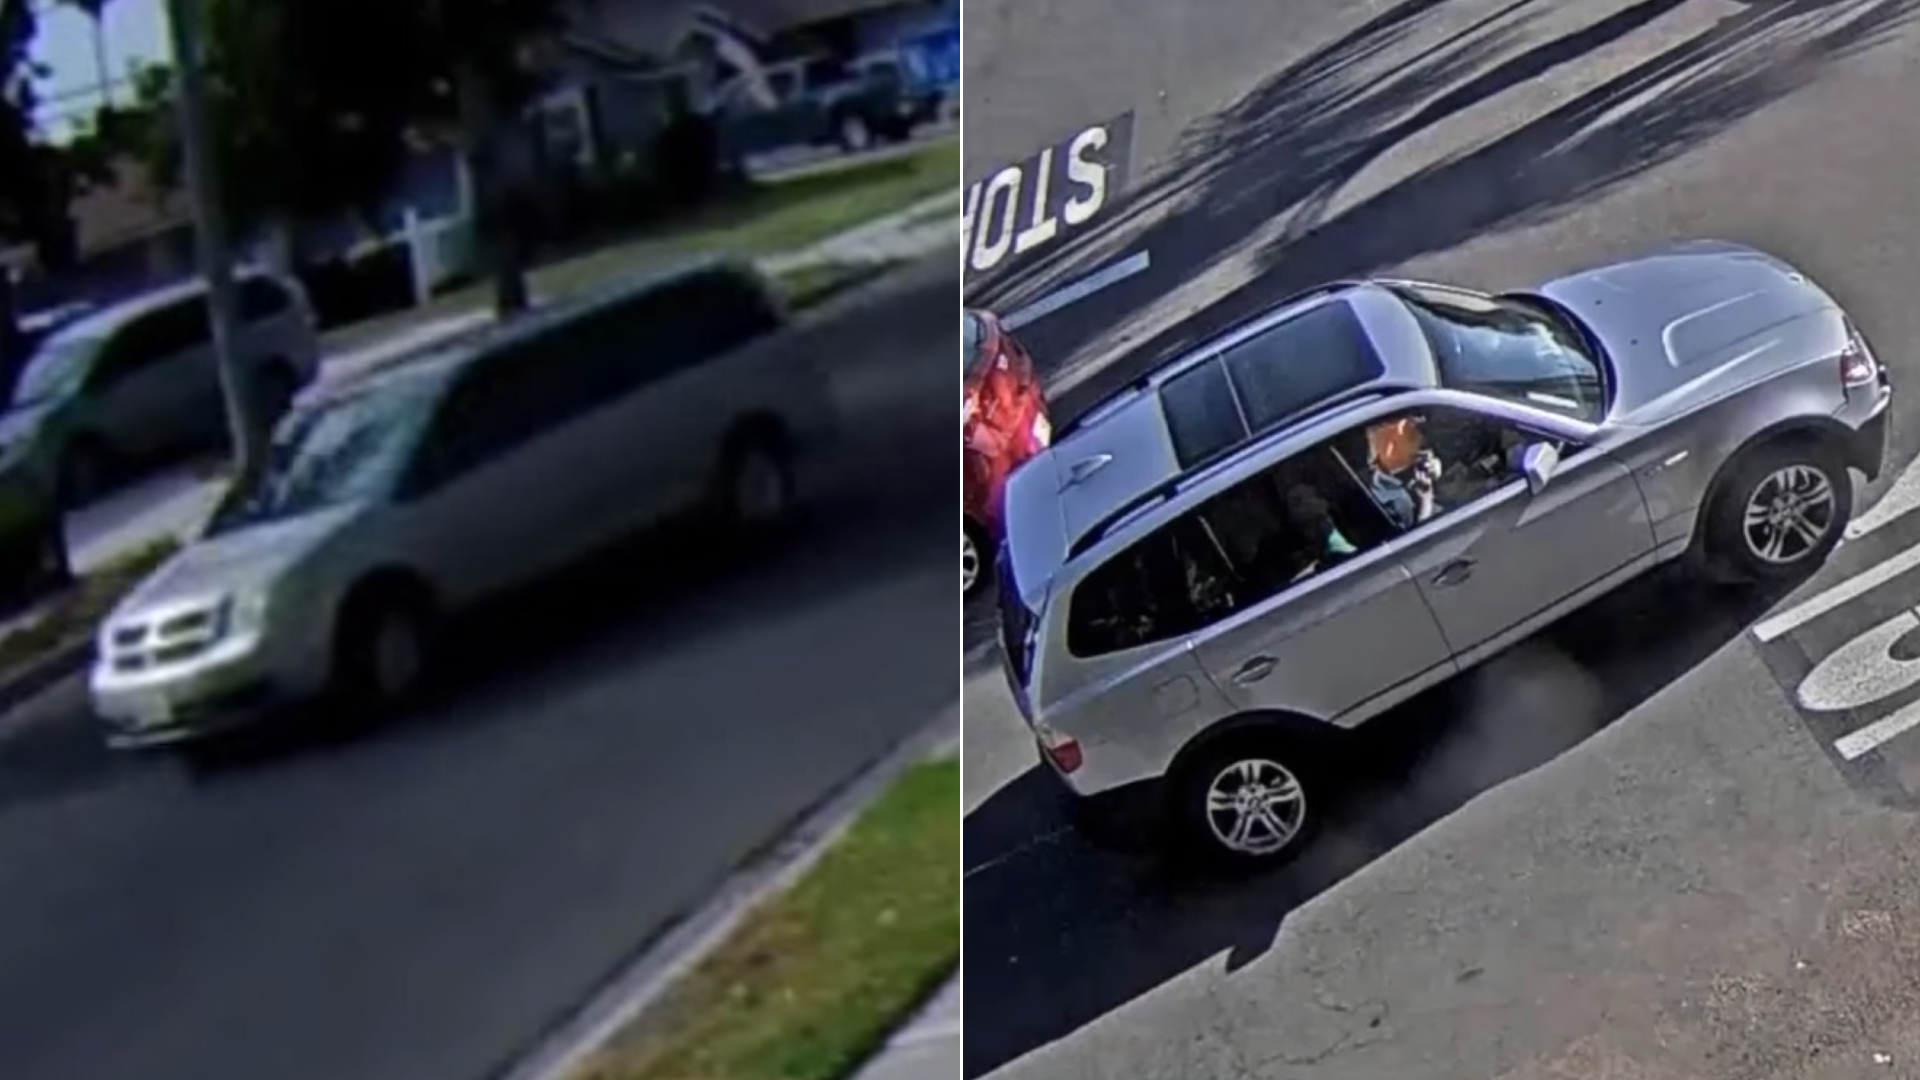 These surveillance images of a minivan and BMW SUV associated with a series of burglaries targeting elderly Anaheim residents were released Sept. 21, 2021, by the Anaheim Police Department.